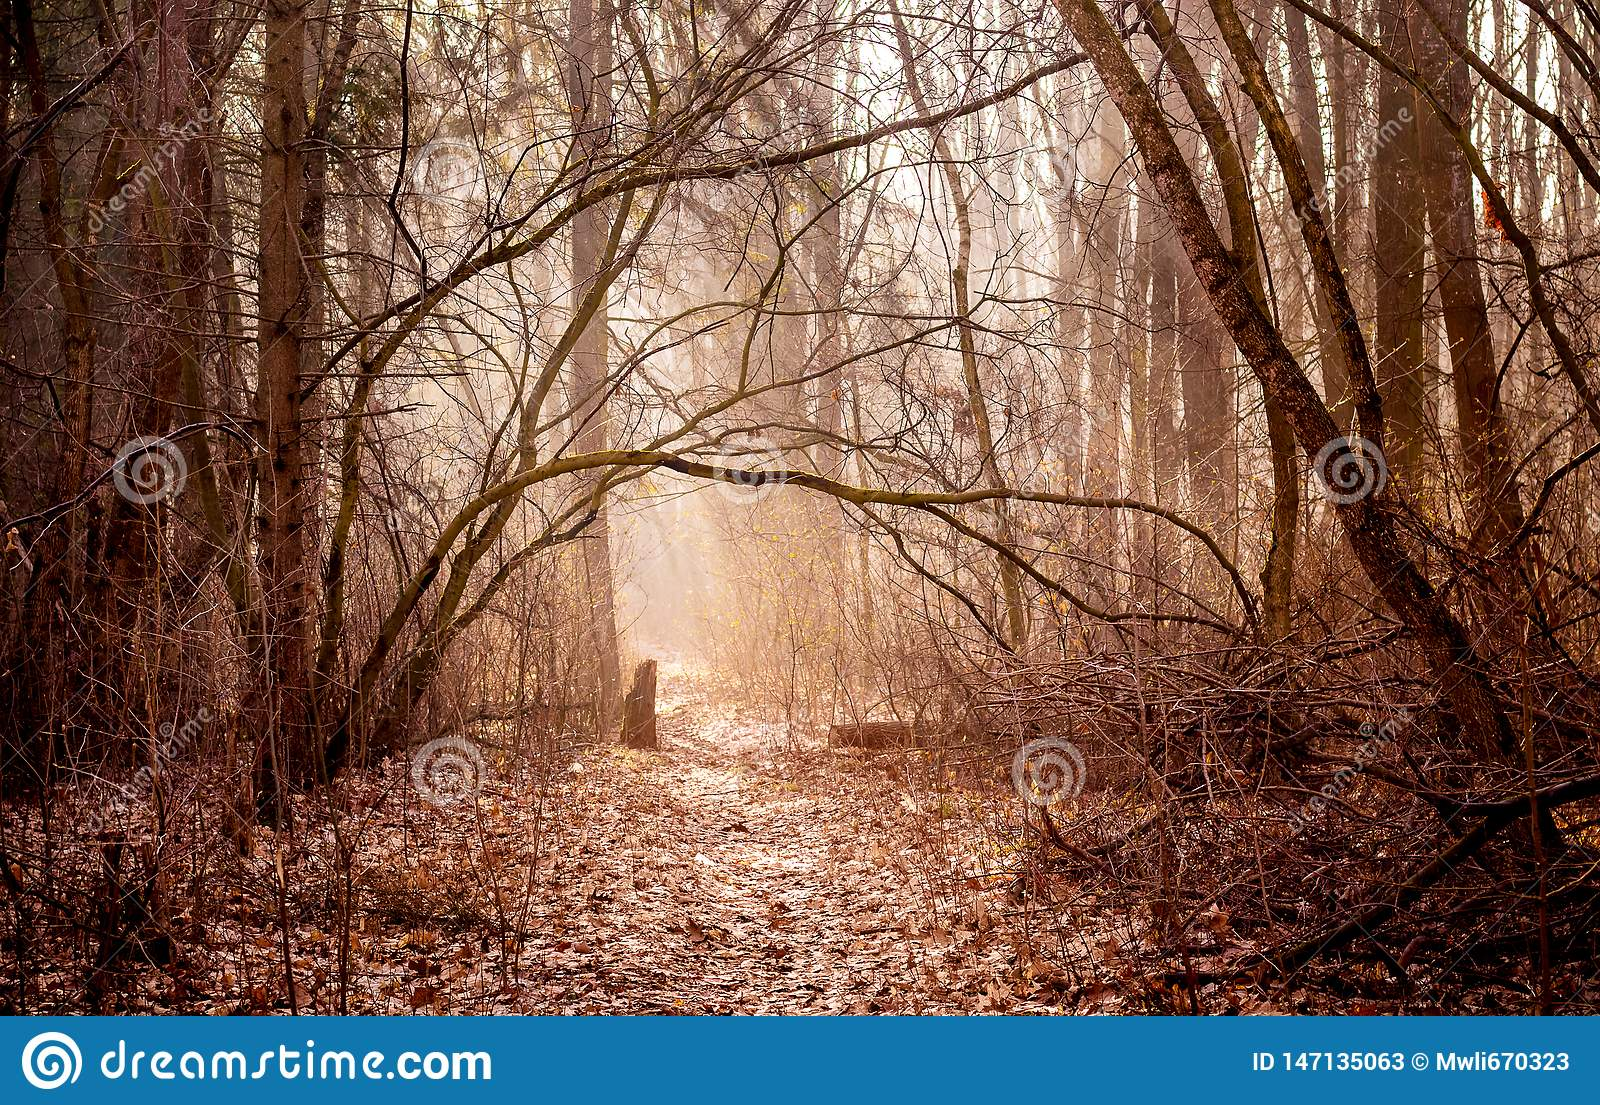 The landscape is in warm colors with autumn woods in the morning, the sun penetrates through the fog and illuminates the road in